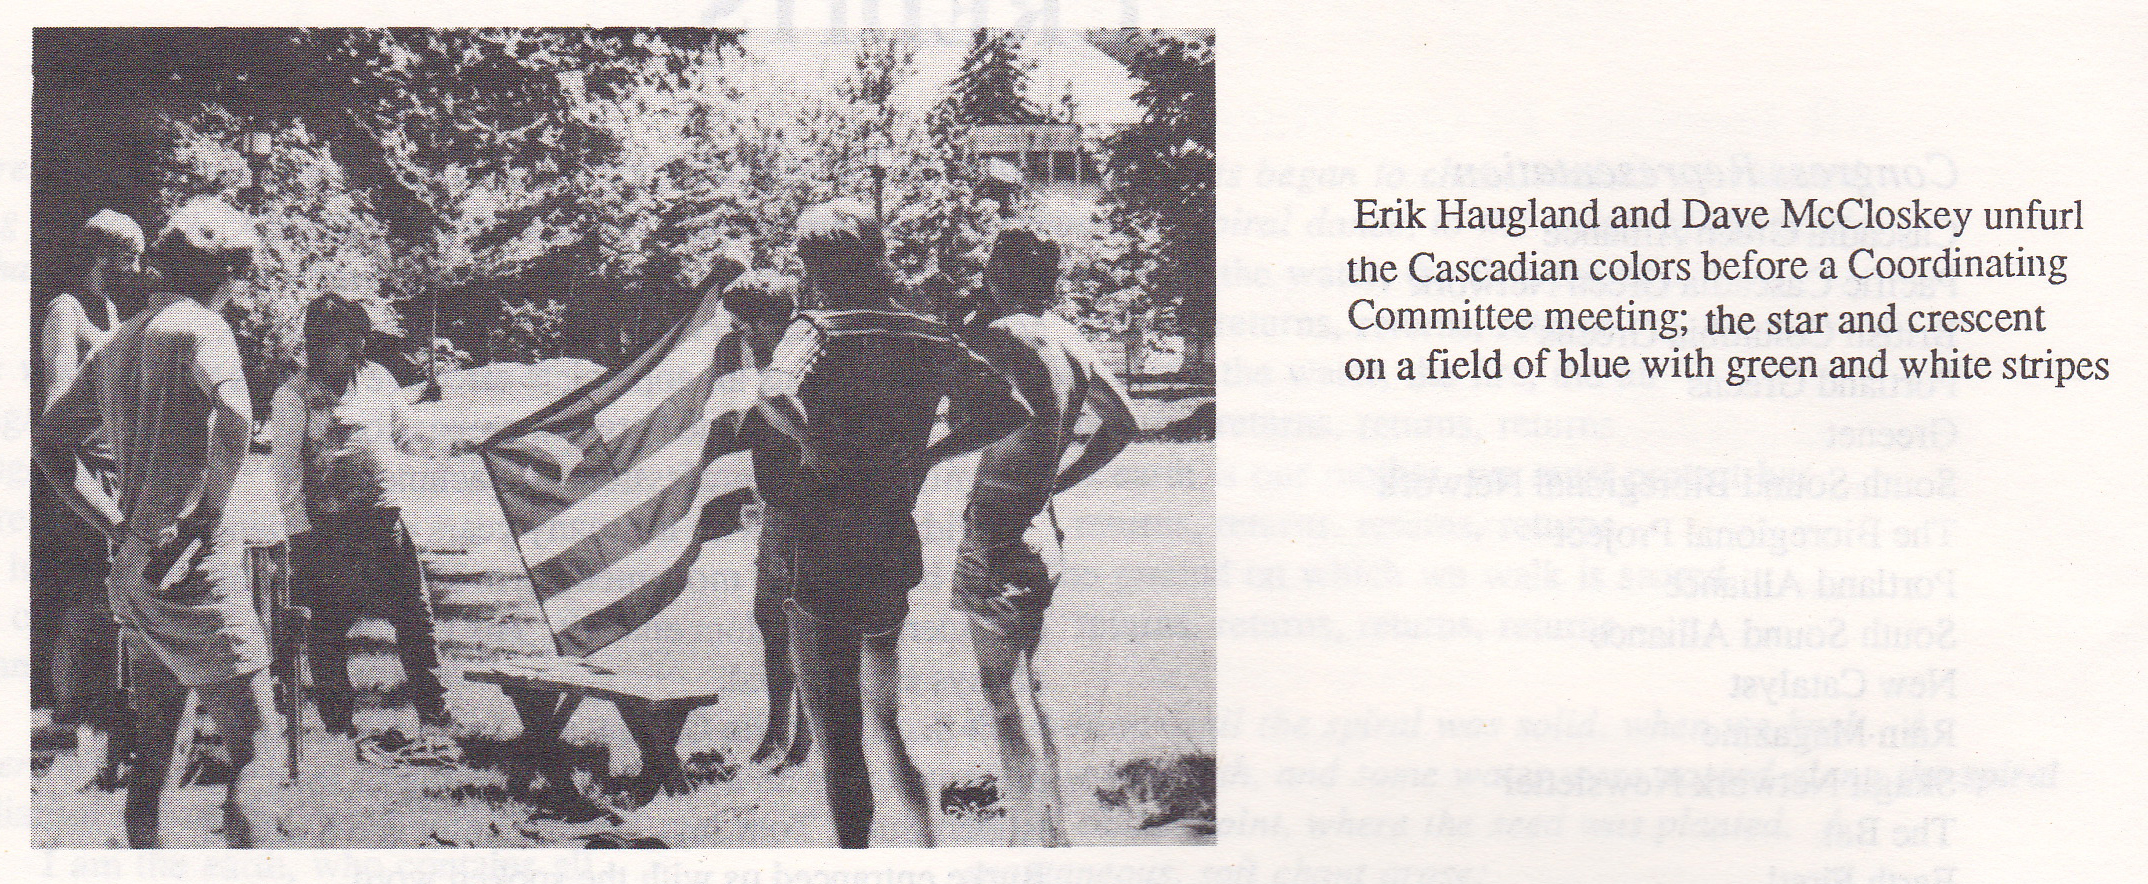 Erik Haugland and Dave McCloskey unfurl the Cascadian colors before a Coordinating Committee meeting; the star and crescent on a field of blue with green and white stripes